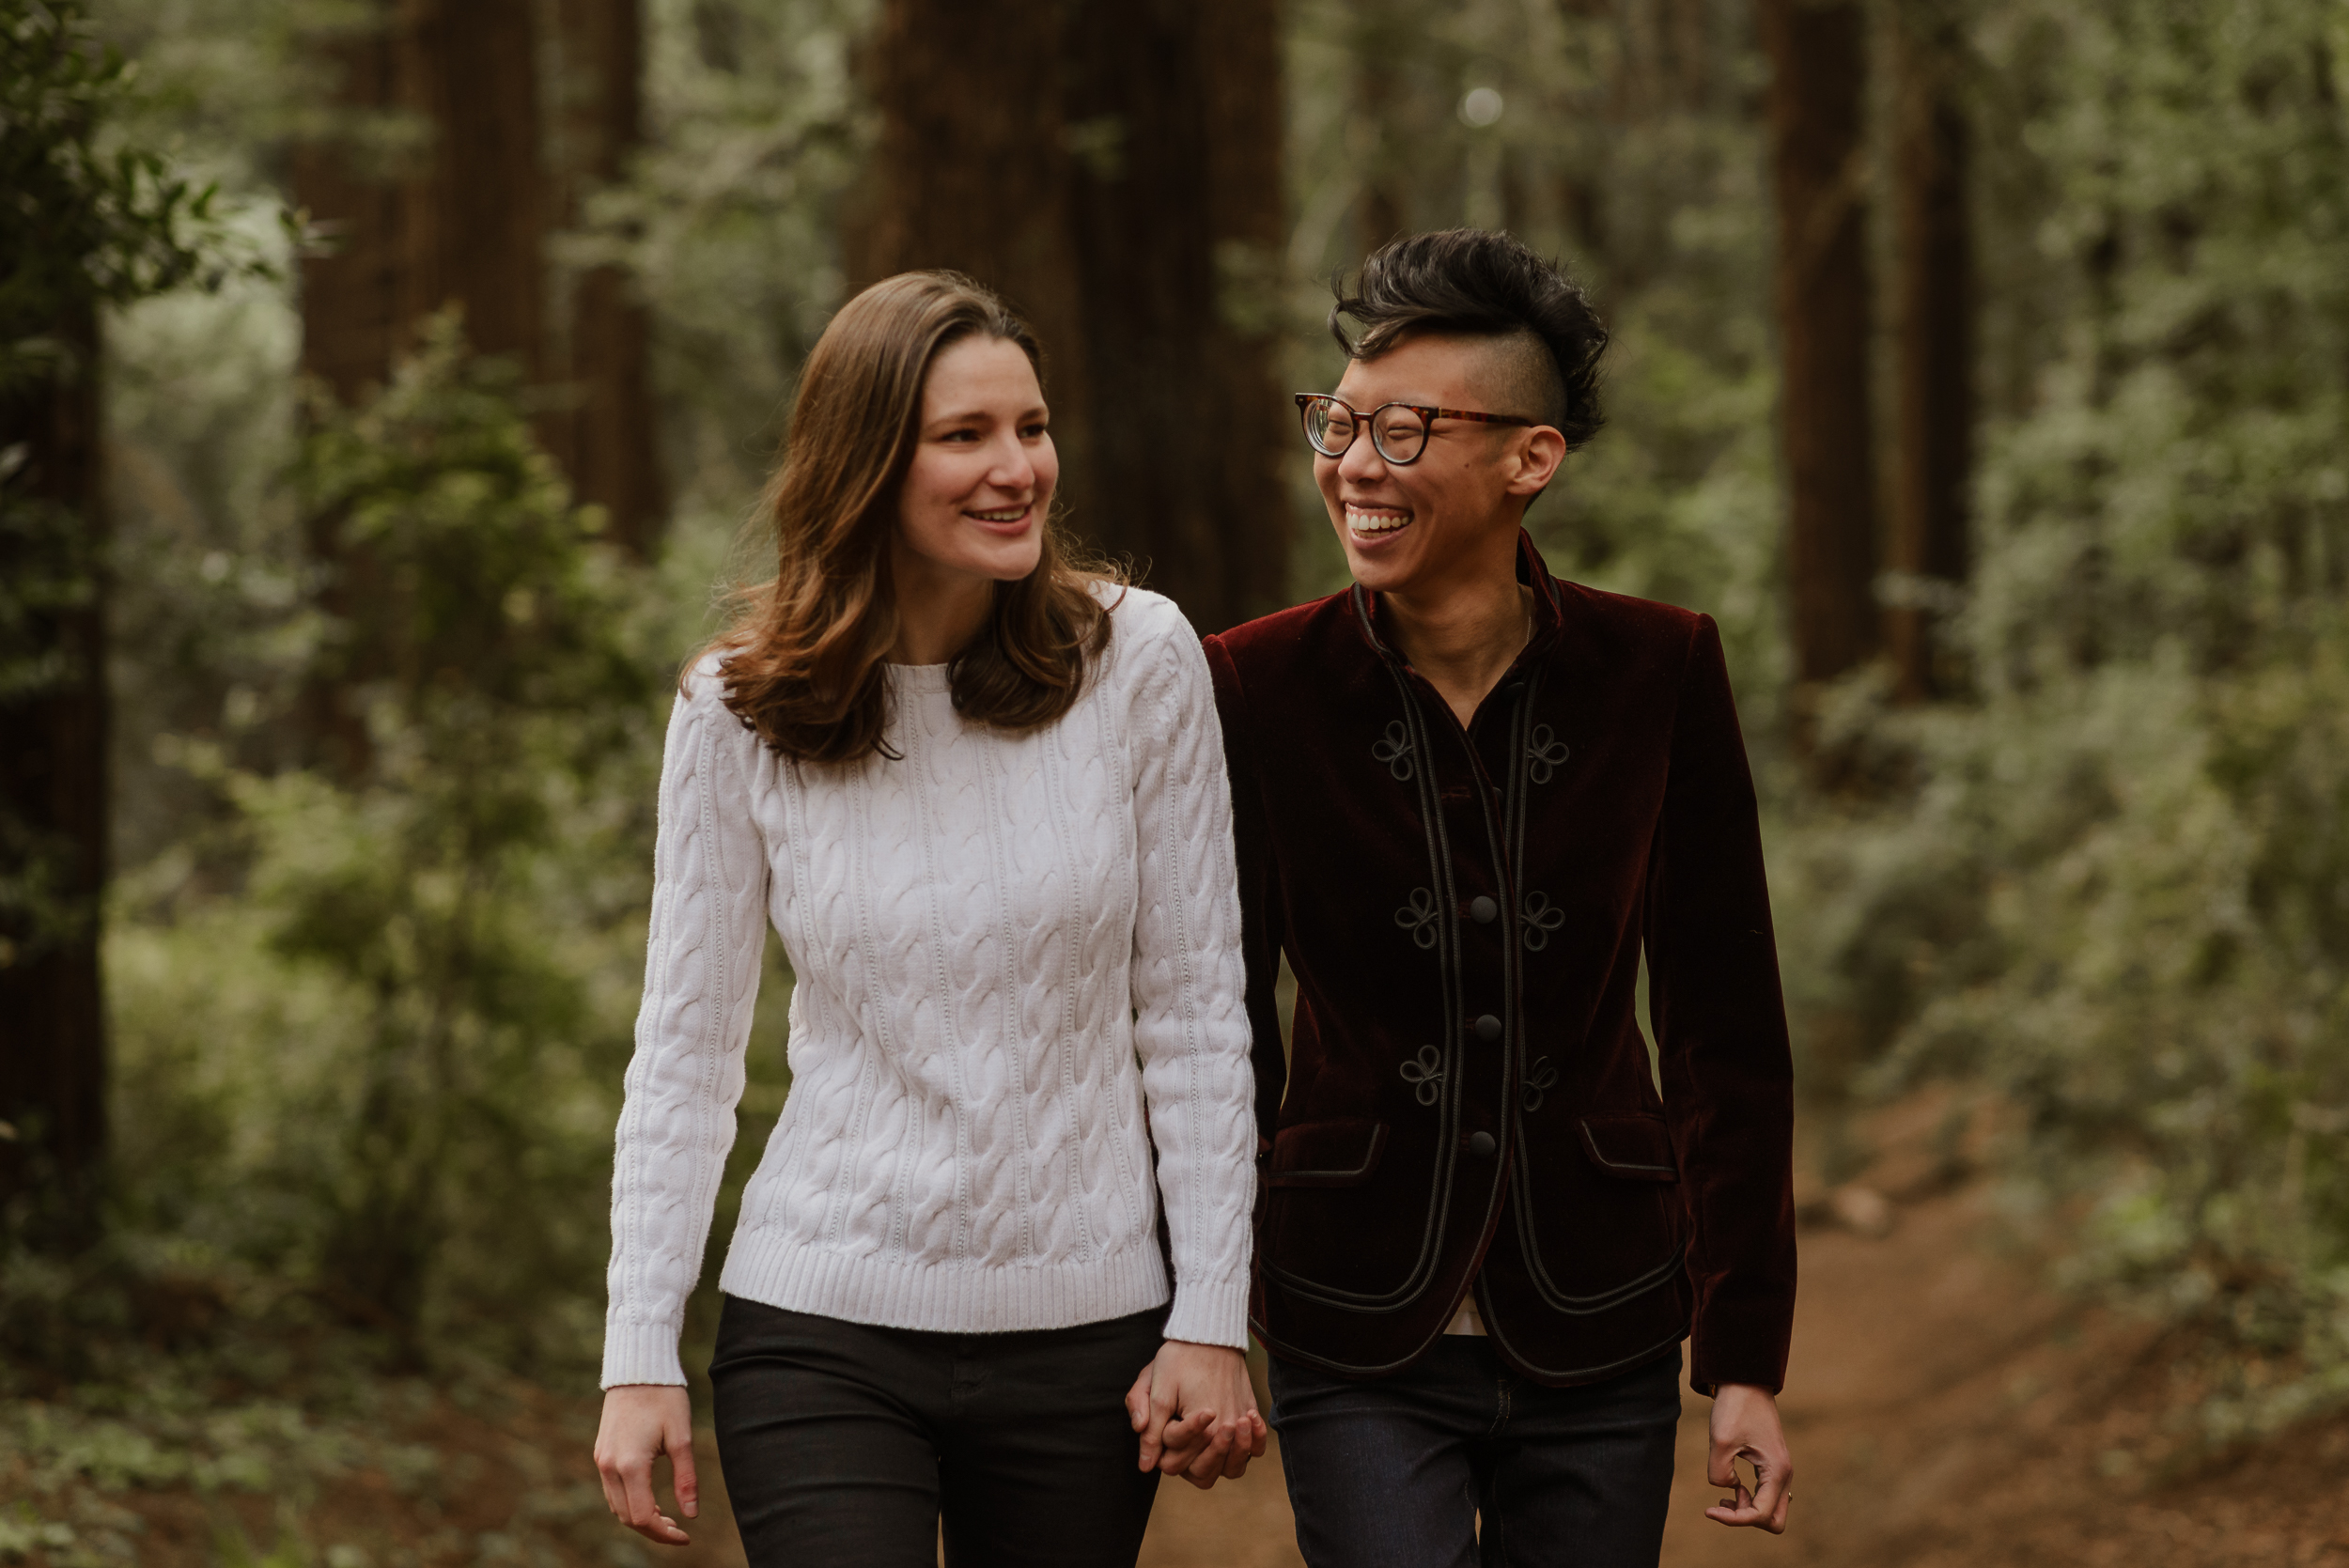 oakland-redwood-regional-park-engagement-session-vivianchen-072.jpg